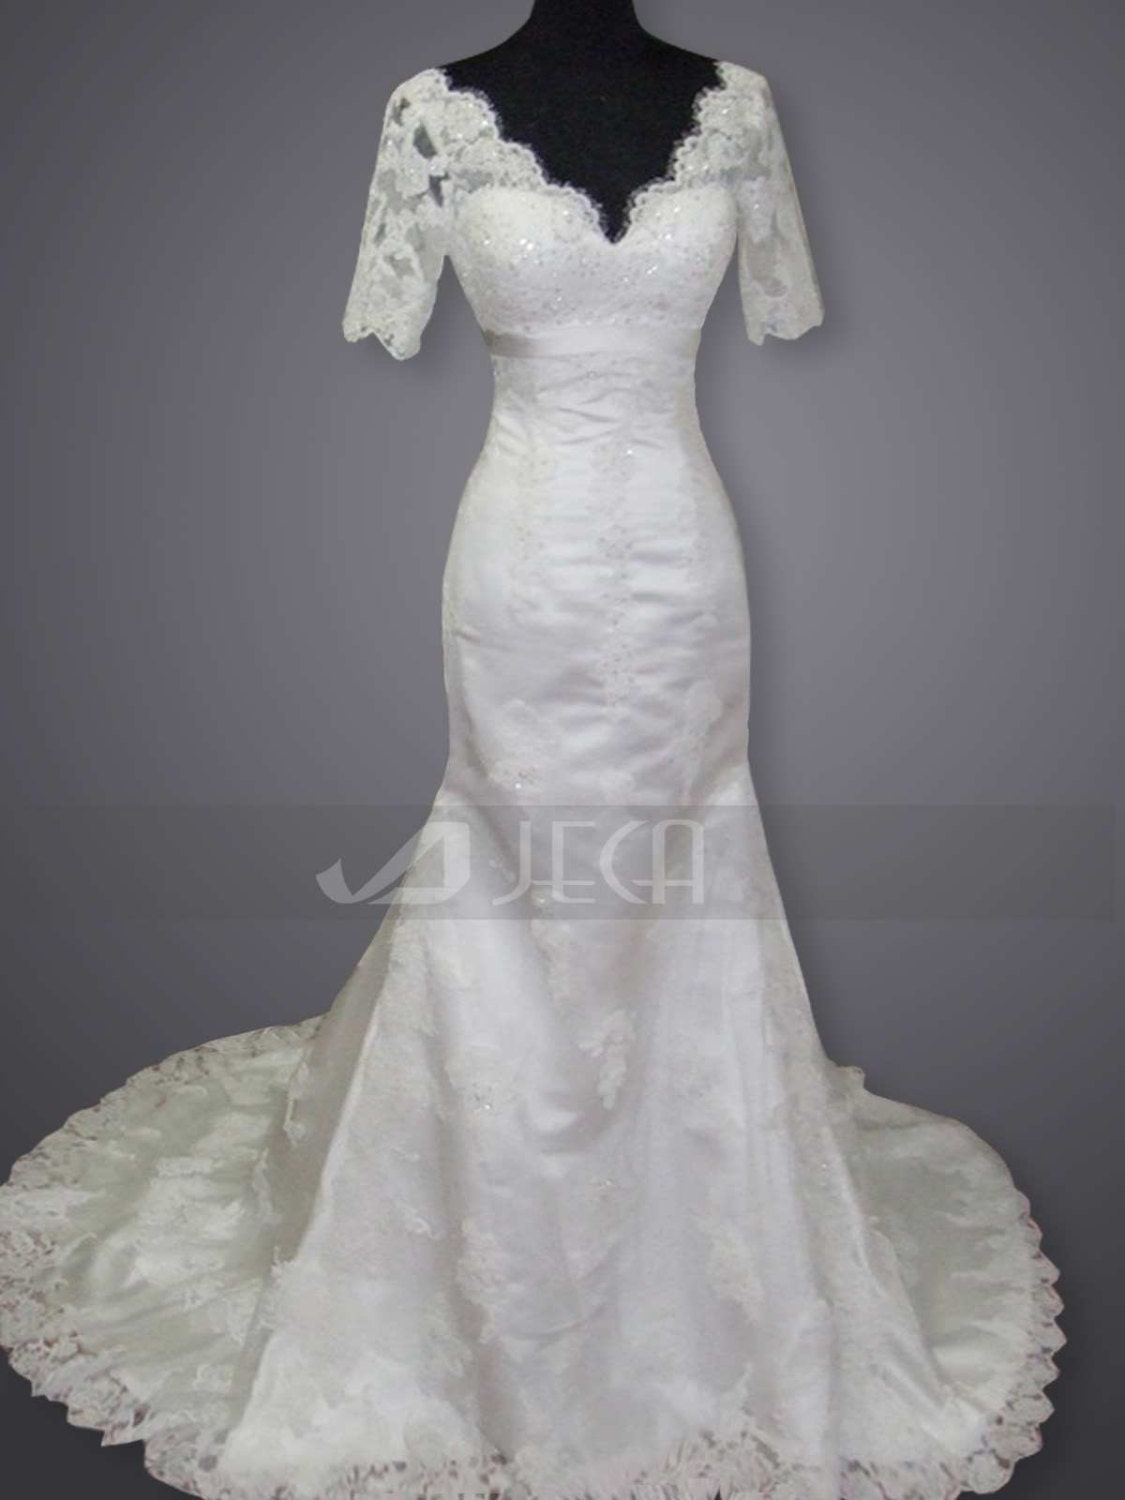 Vintage Inspired Lace Elegant Wedding Gown Fall by JecaBridal